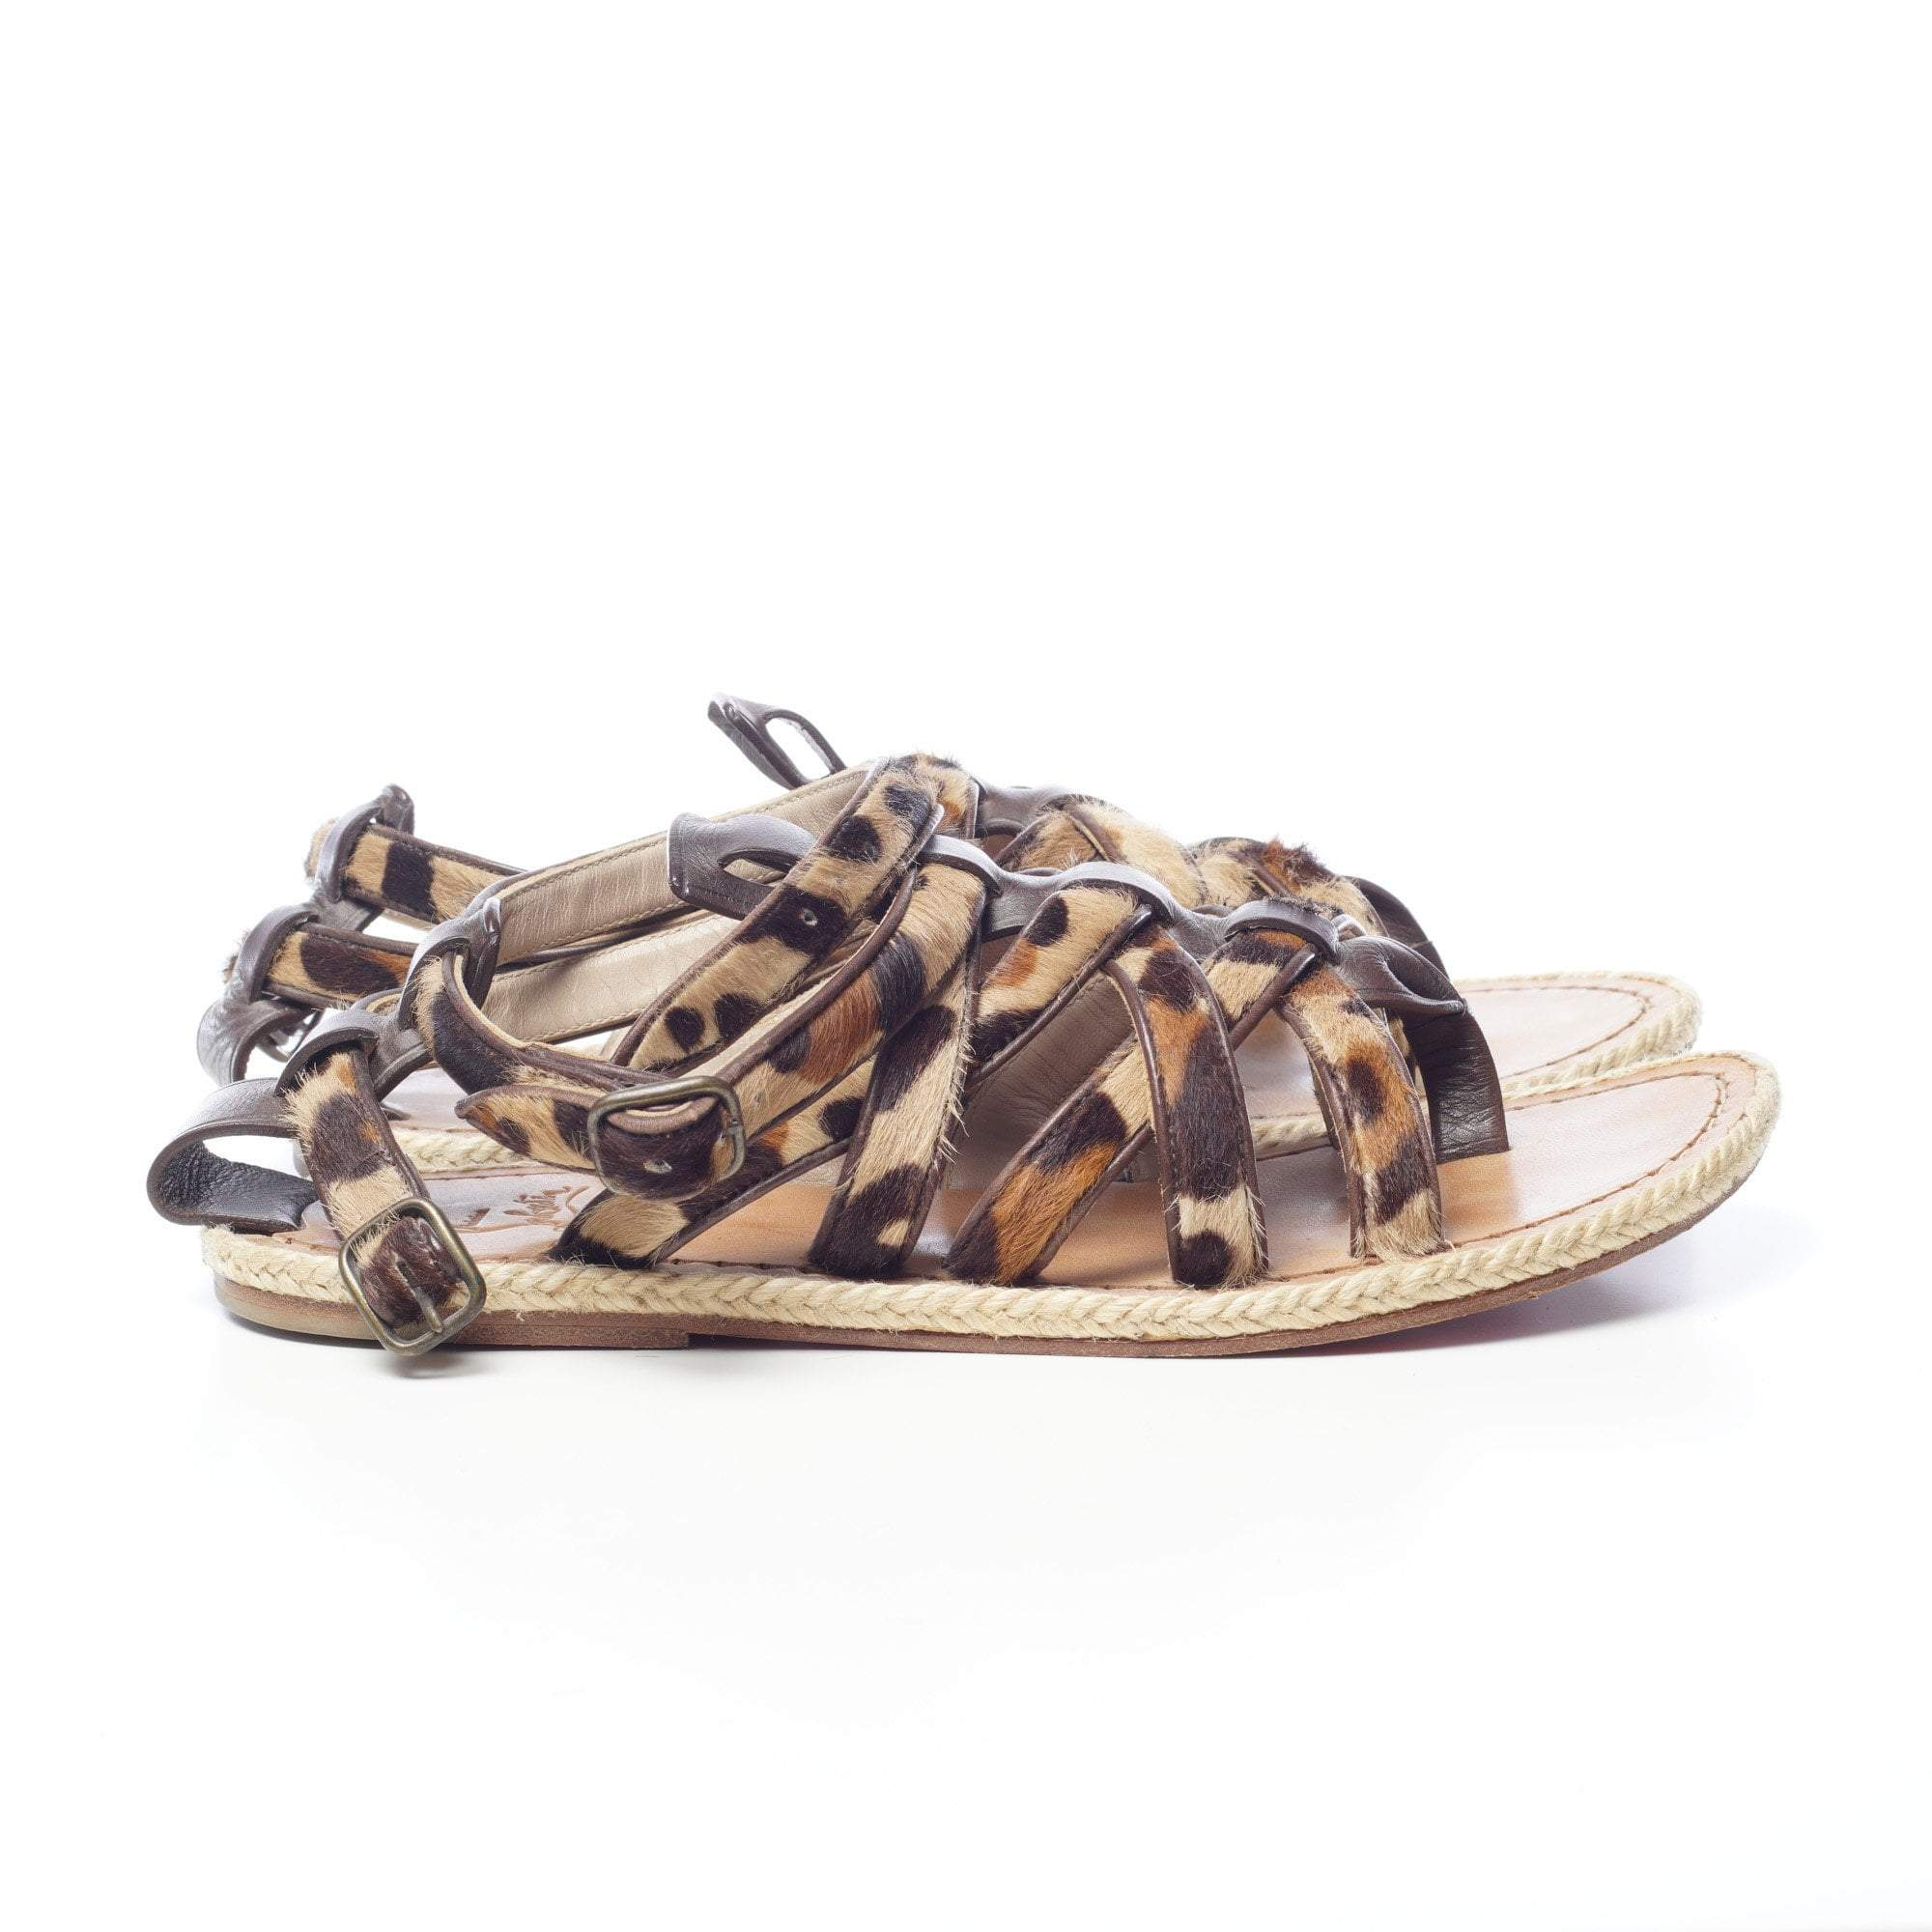 Christian Louboutin Leopard Pony Hair Nuria Flat Gladiator Sandals